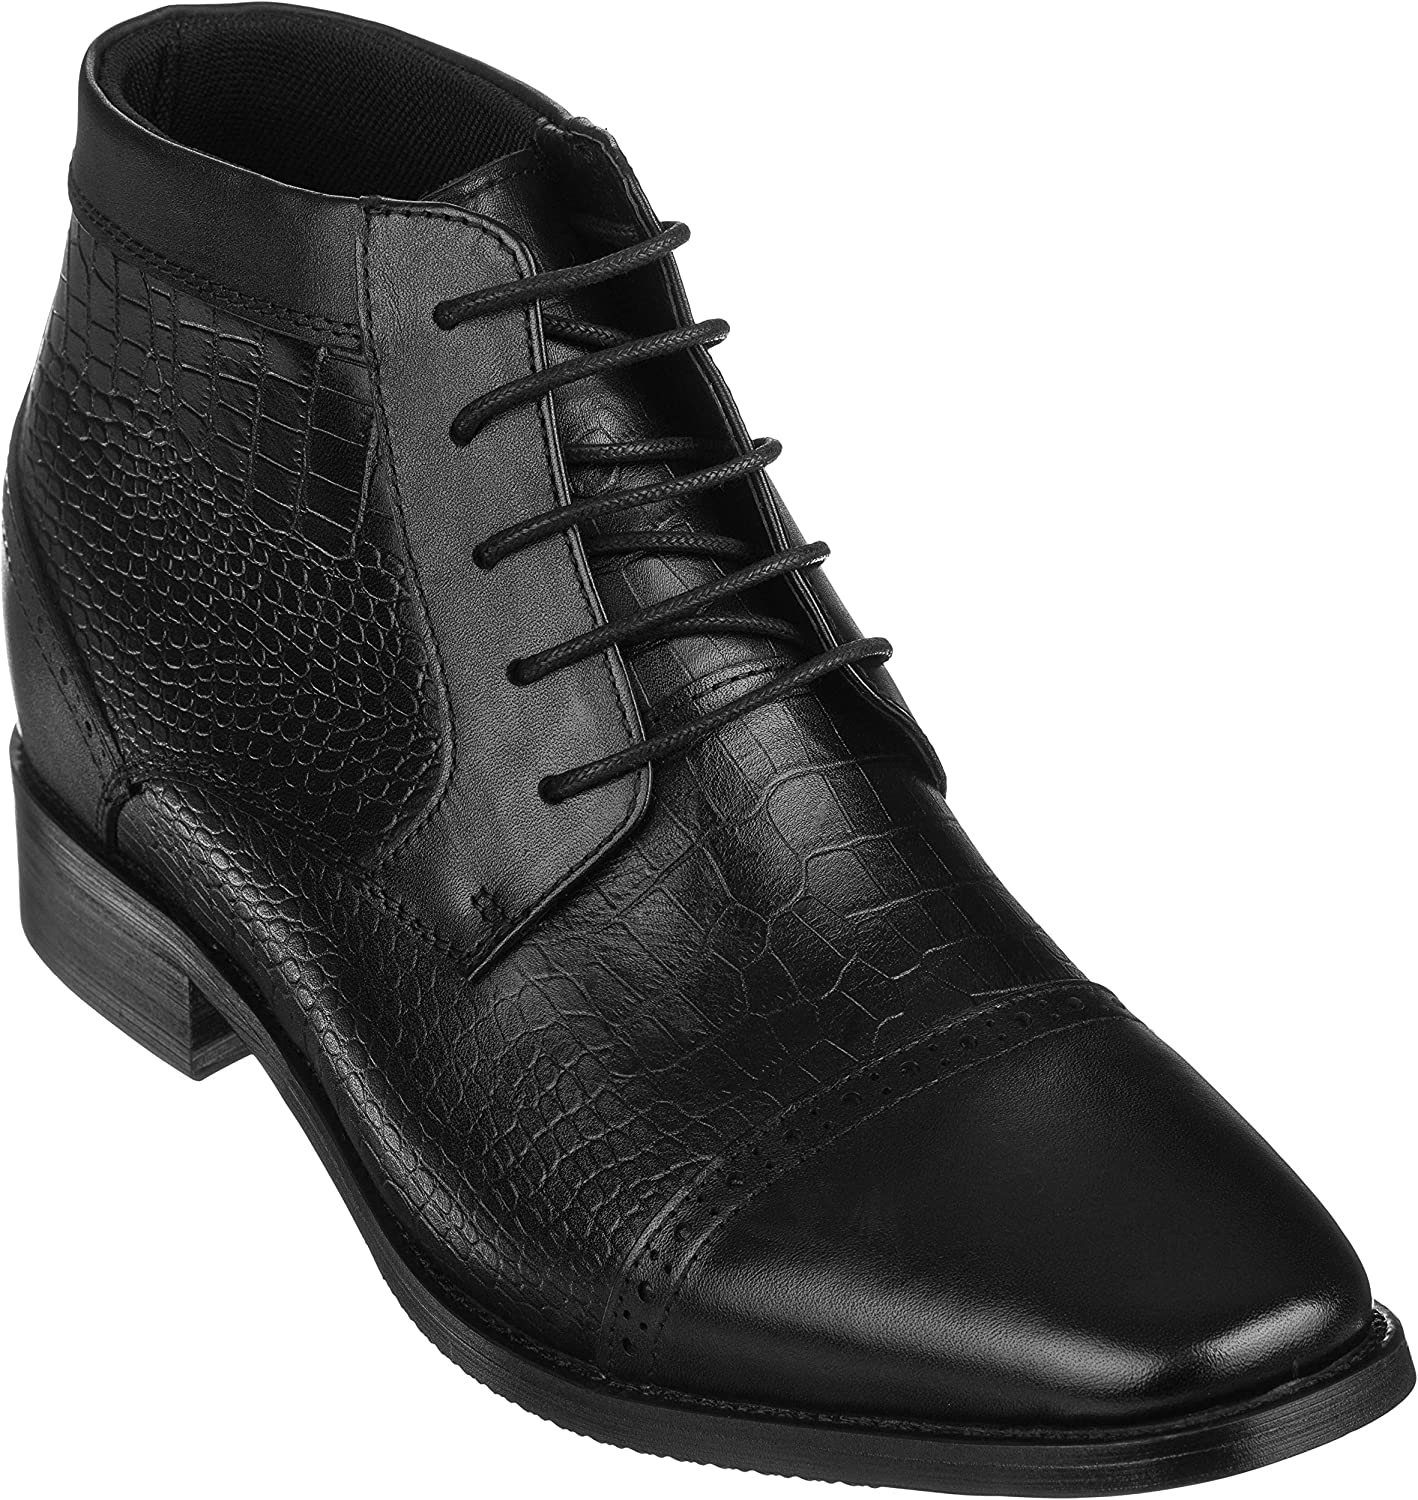 CALTO Men's Invisible Height Increasing Elevator shoes - Black Premium Leather Lace-up High-top Ankle Boots - 2.8 Inches Taller - T54023